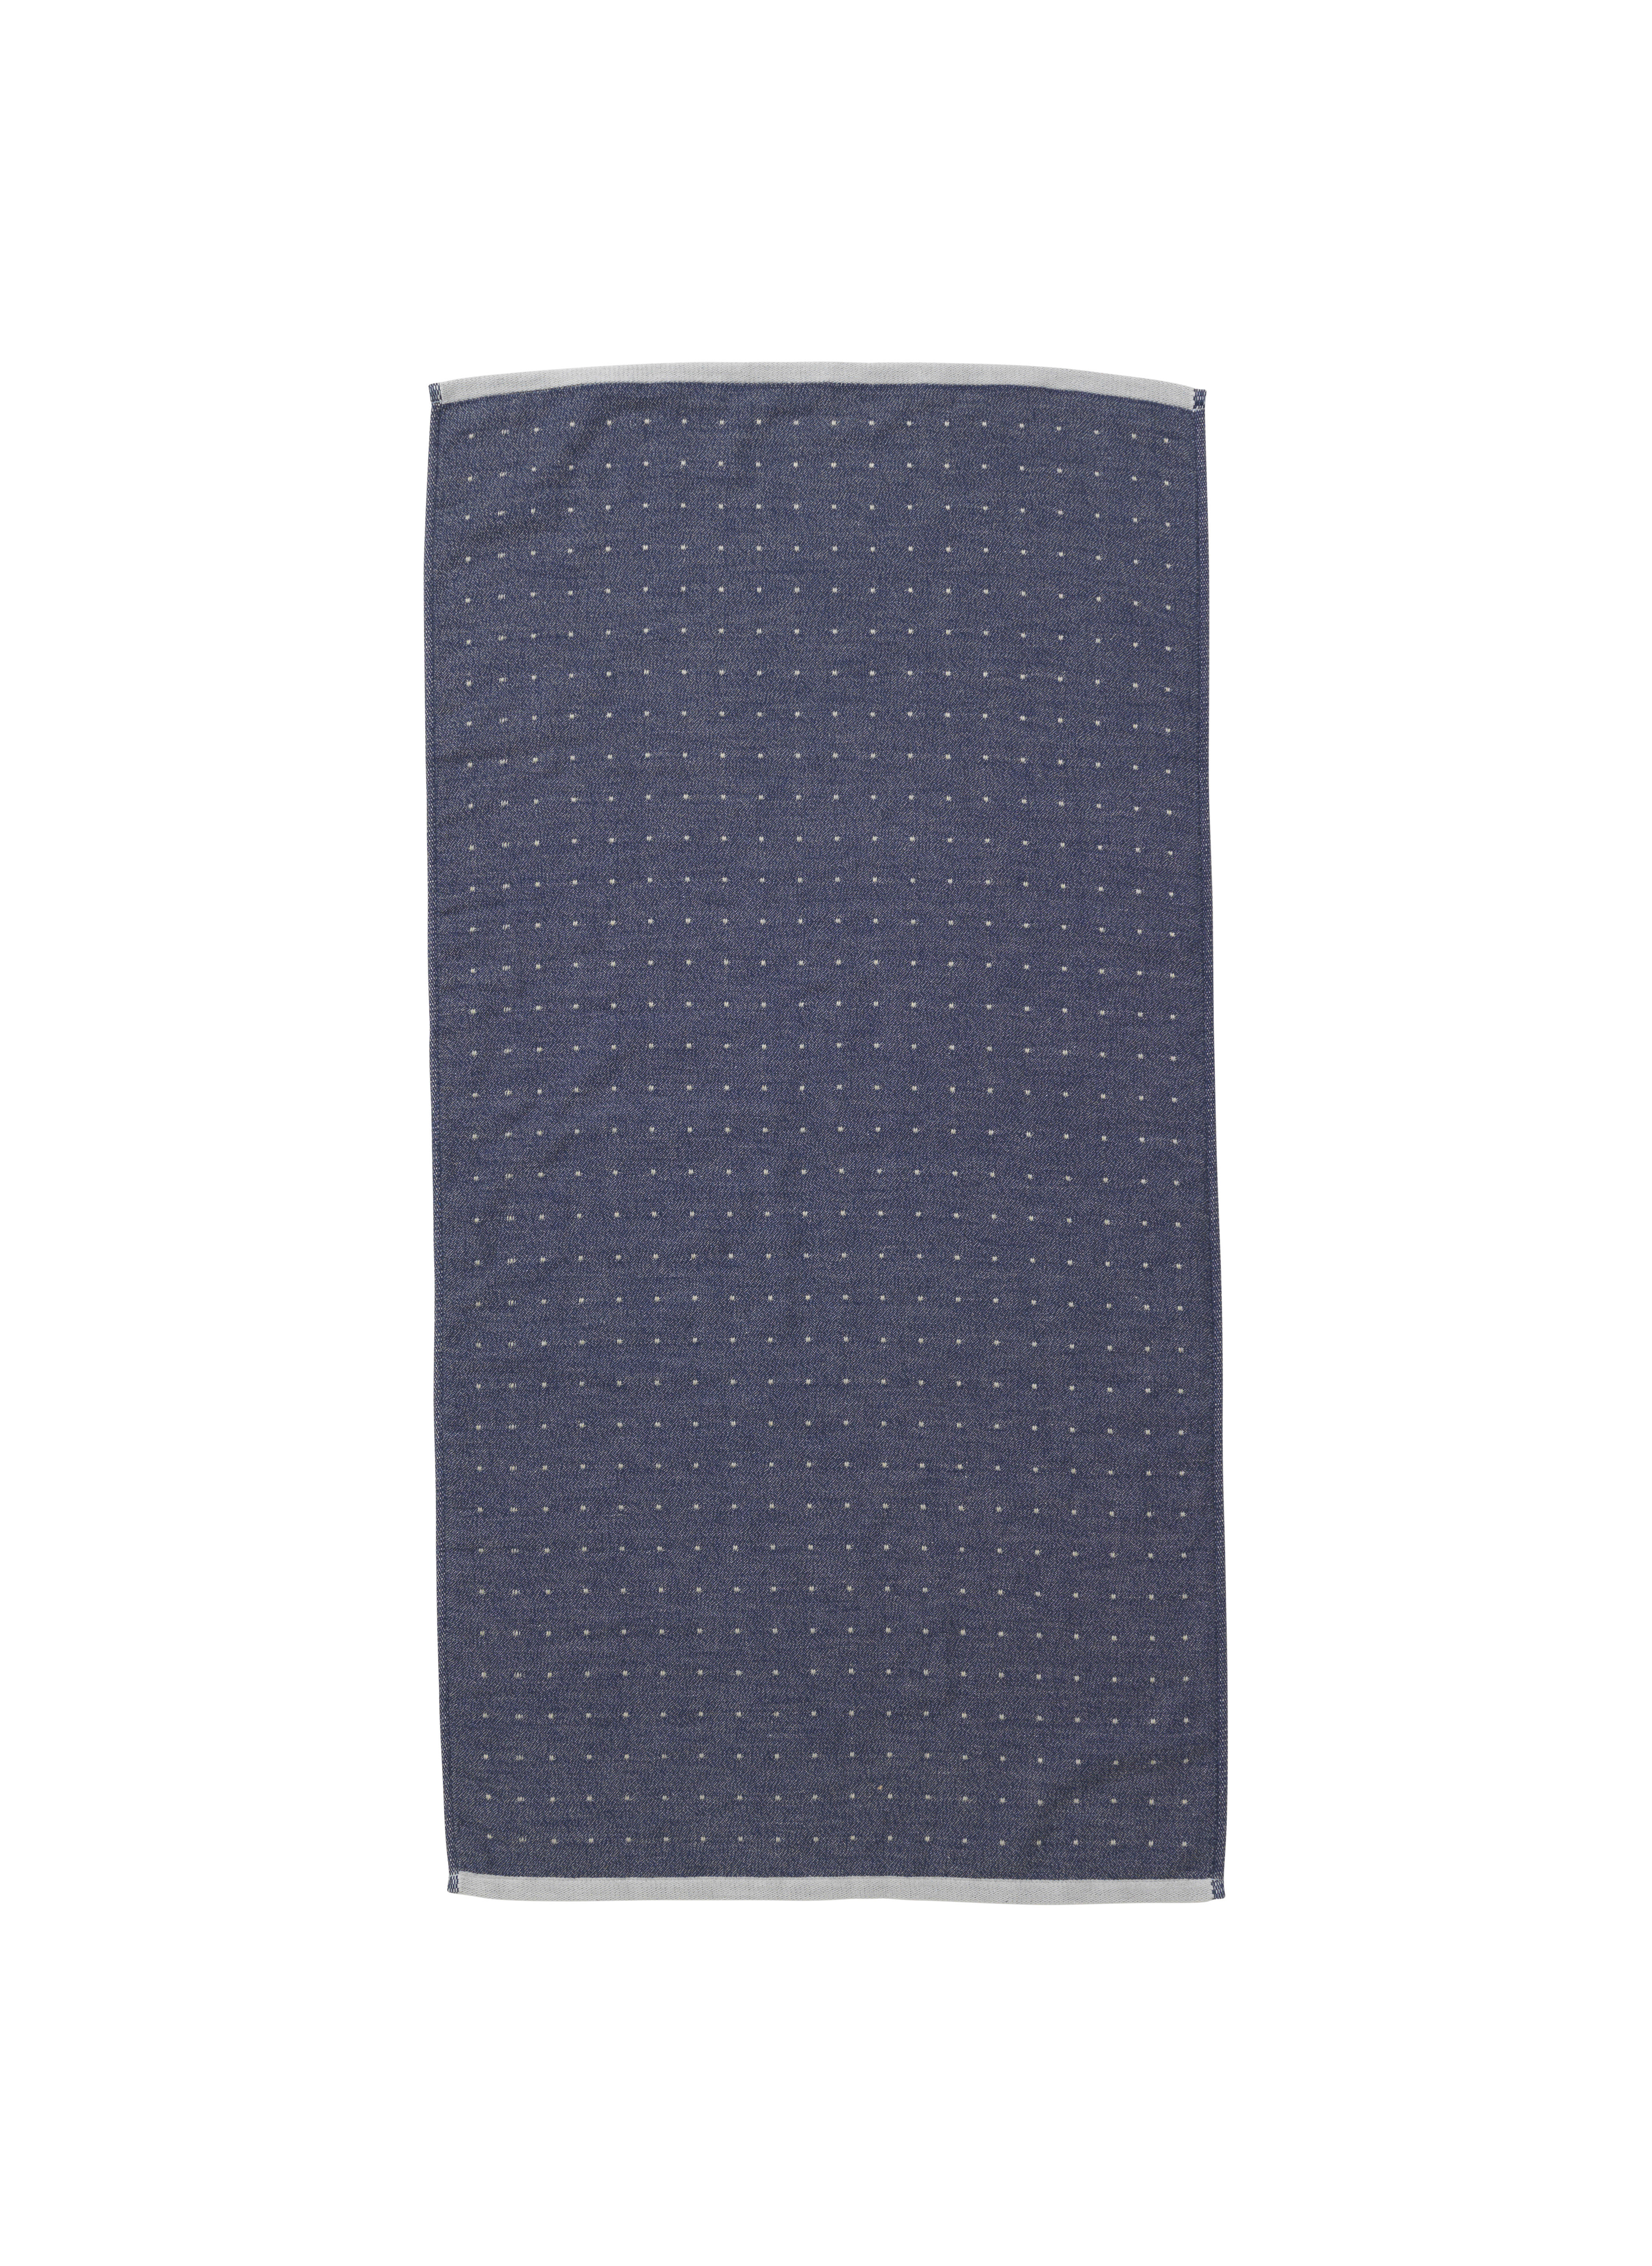 Decoration - Bedding & Bath Towels - Sento Hand towel - / Organic - 100 x 50 cm by Ferm Living - Blue - Cotton